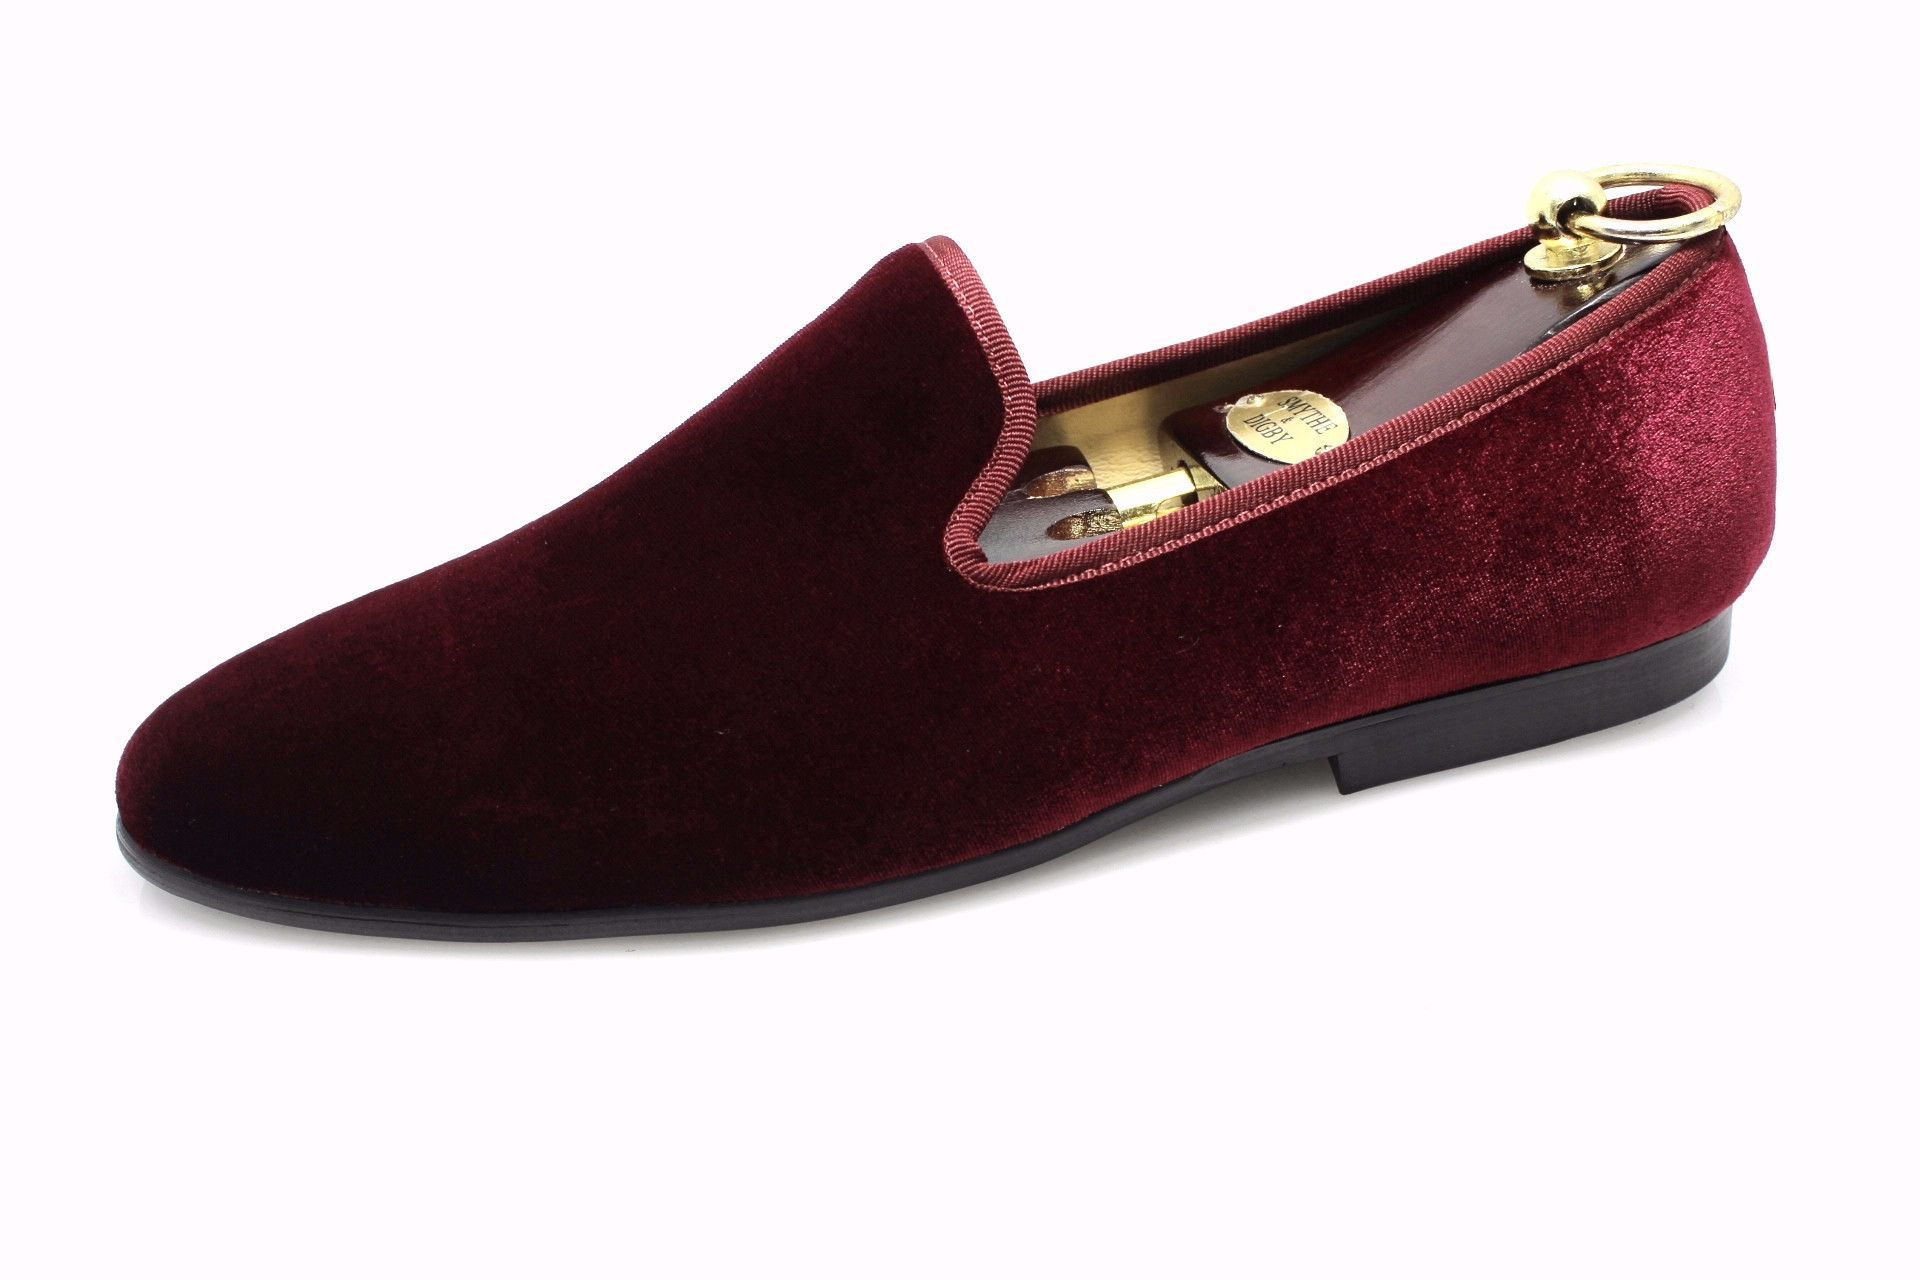 34a5ae58e9f9 Smythe   Digby Men s Albert Slipper Leather Velvet Loafer Burgundy ...